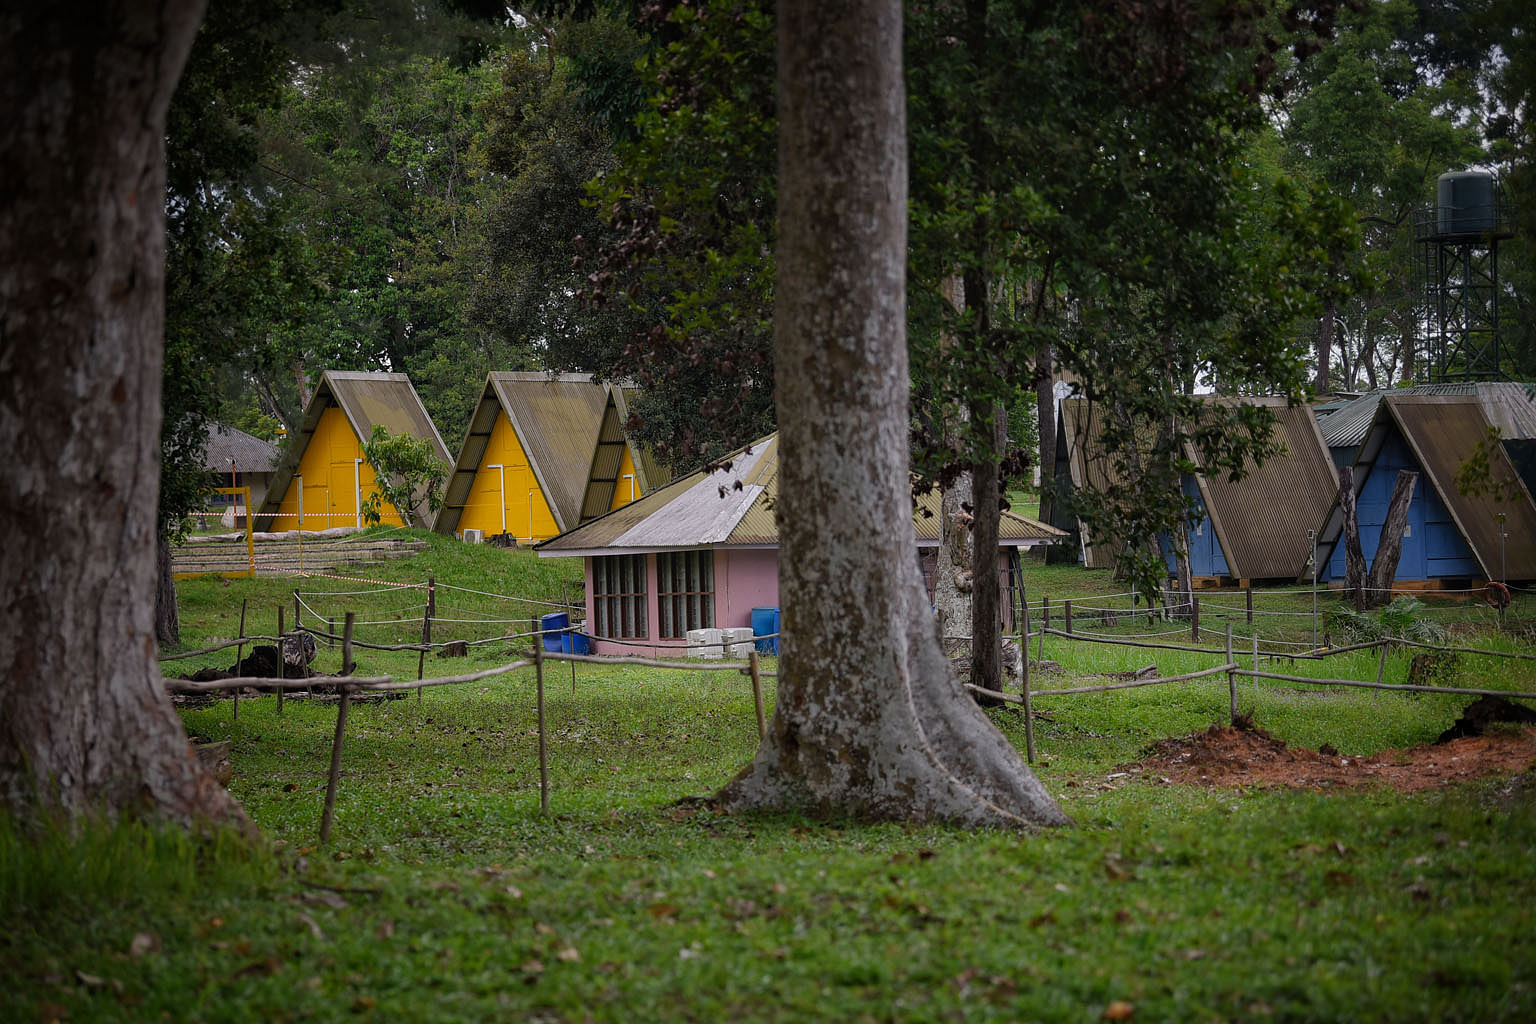 Sarimbun Scout Camp in Lim Chu Kang, one of the premises being used to house foreign workers. Marquees at Tanjong Pagar Terminal on Wednesday. A large facility is being set up that could house up to 15,000 Covid-19 patients or foreign workers, as the